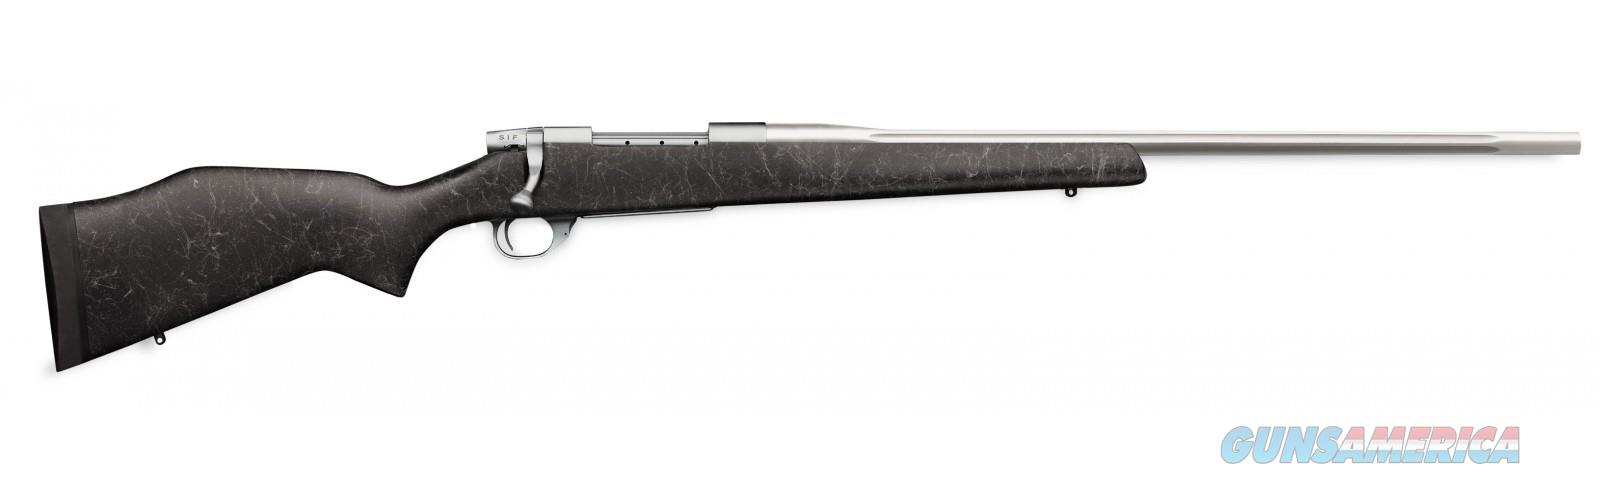 "Weatherby Vanguard Accuguard .300 Wby Mag 24"" VCC300WR4O   Guns > Rifles > Weatherby Rifles > Sporting"